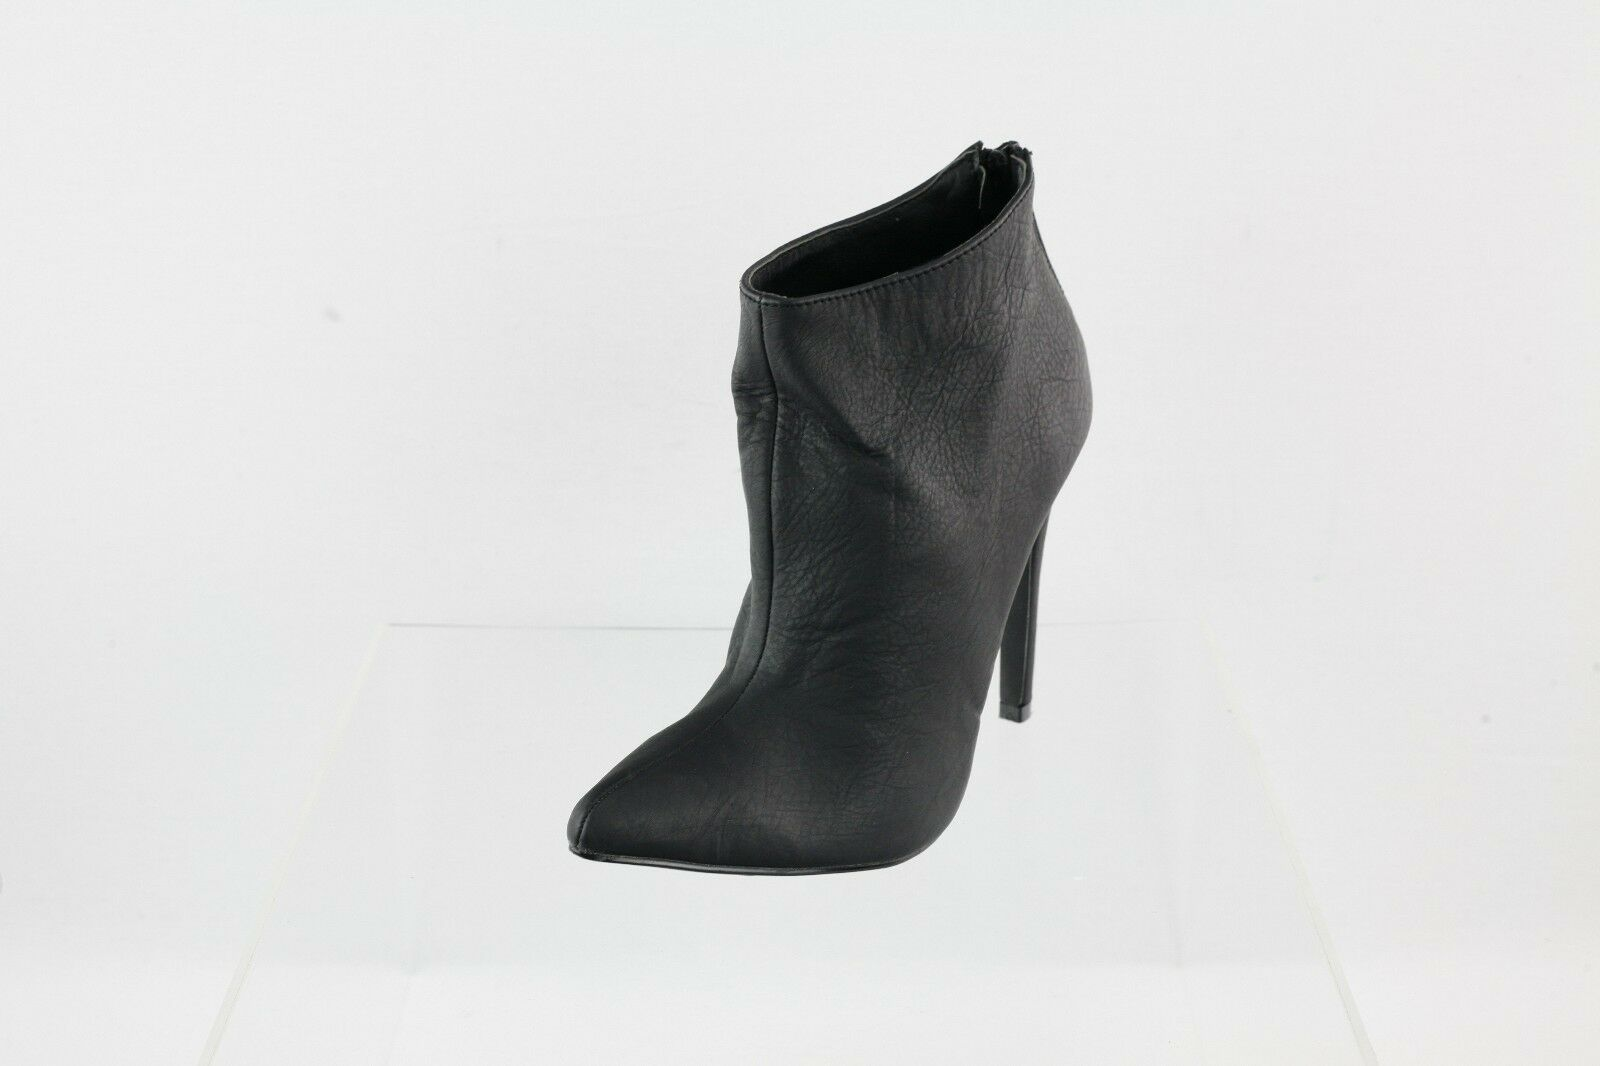 Women's Michael Antonio Black Pointed Toe Heeled Ankle Boots Size 6 M